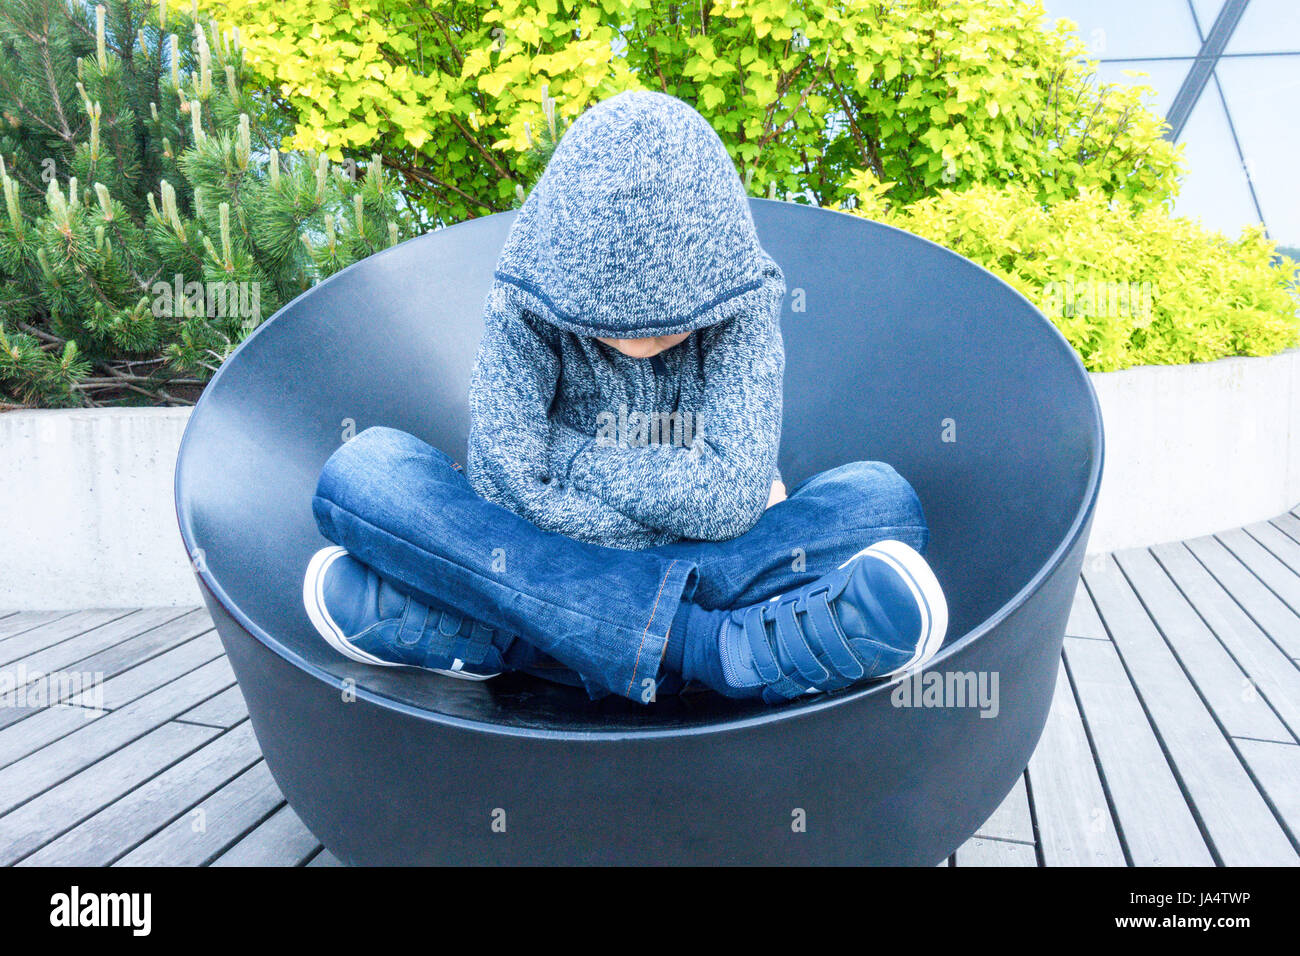 Sad, lonely, unhappy, disappointed child sitting outdoors - Stock Image